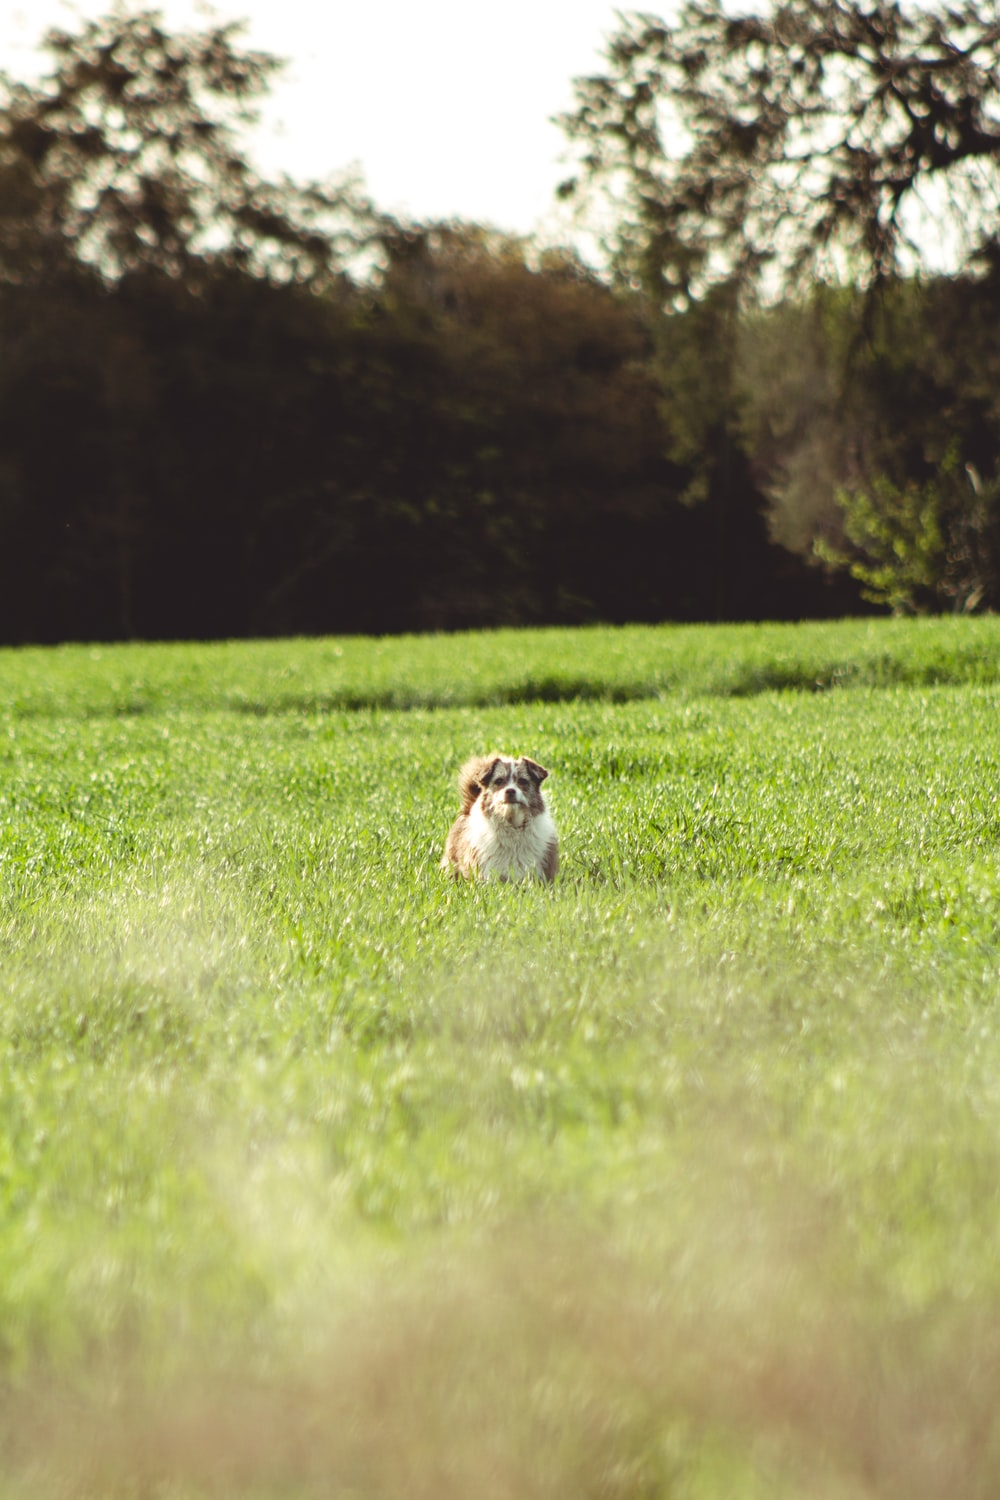 white and grey dog on green grass field during daytime